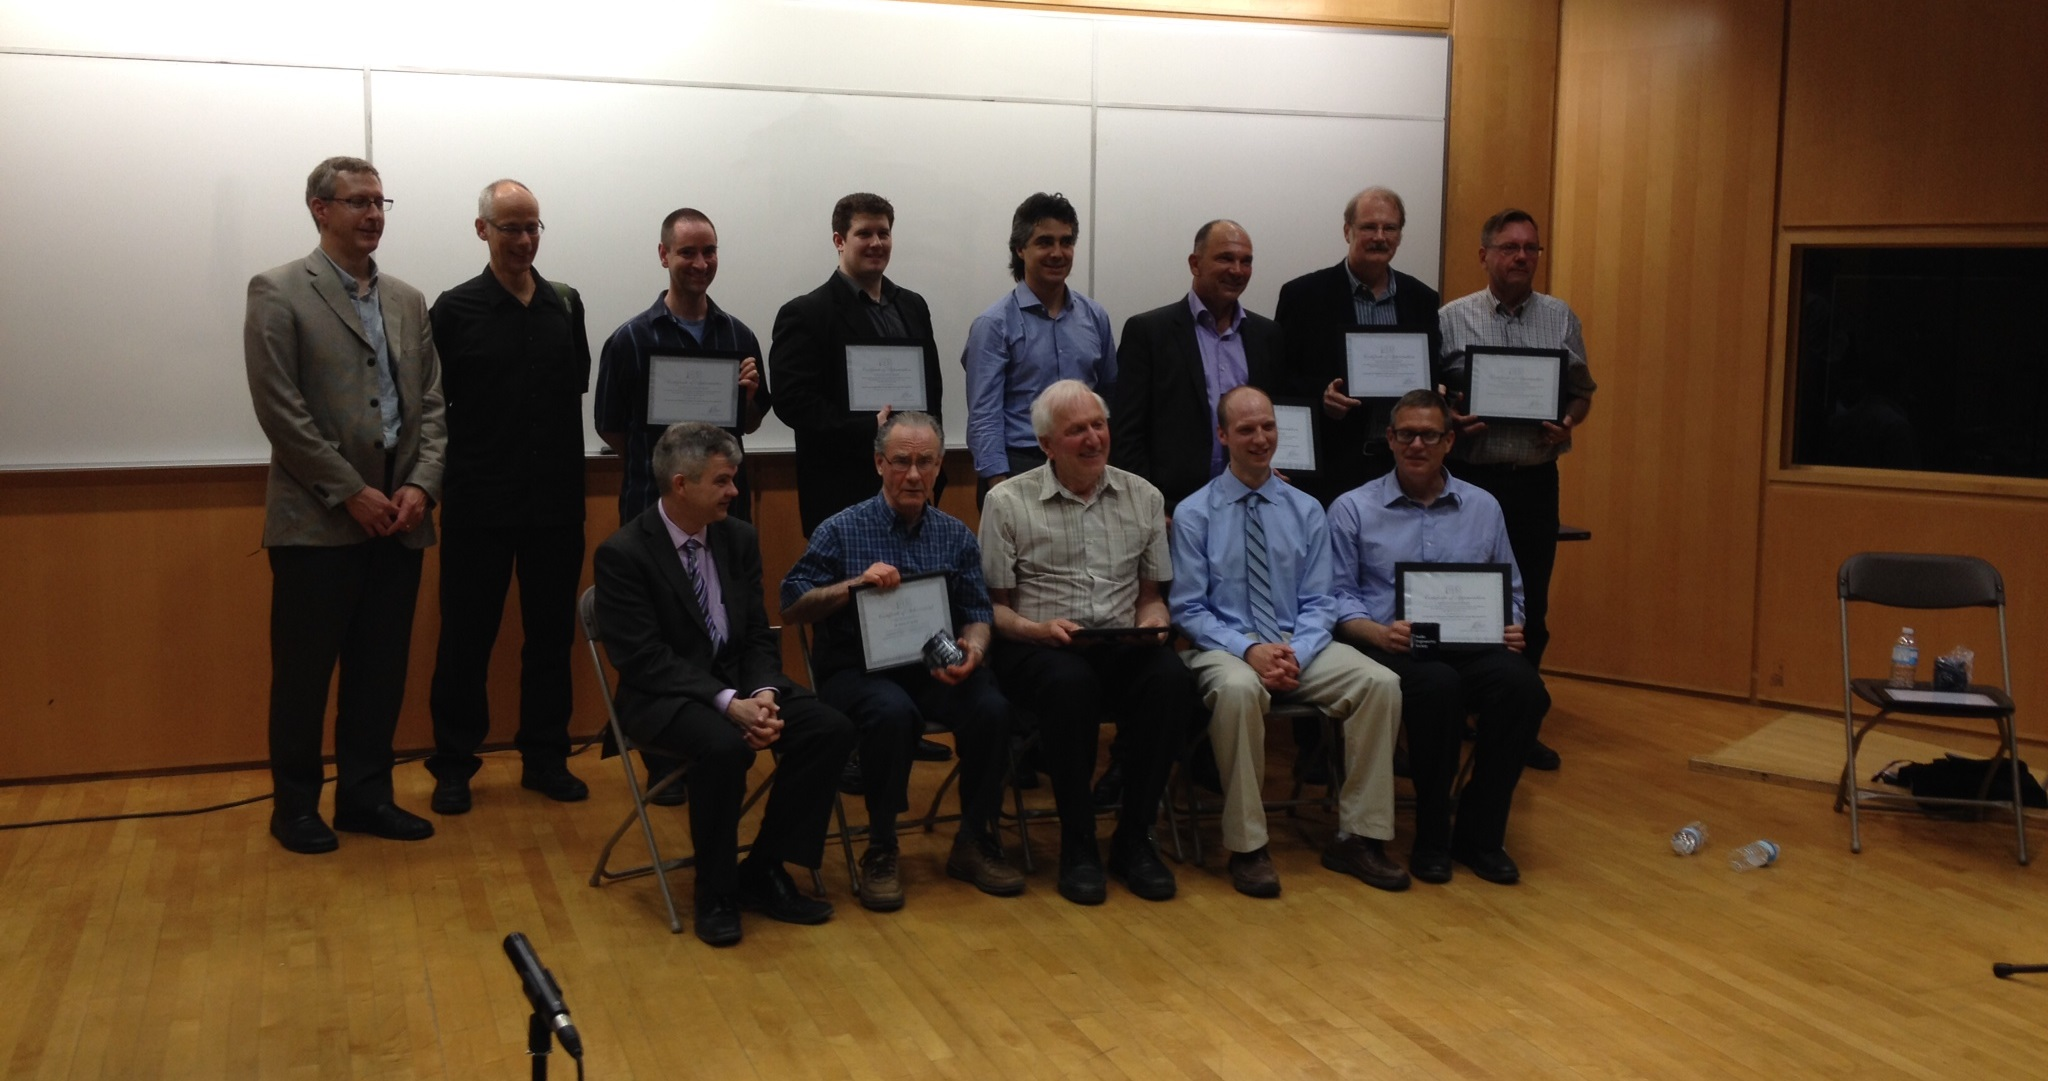 Audio Research Group photo holding awards